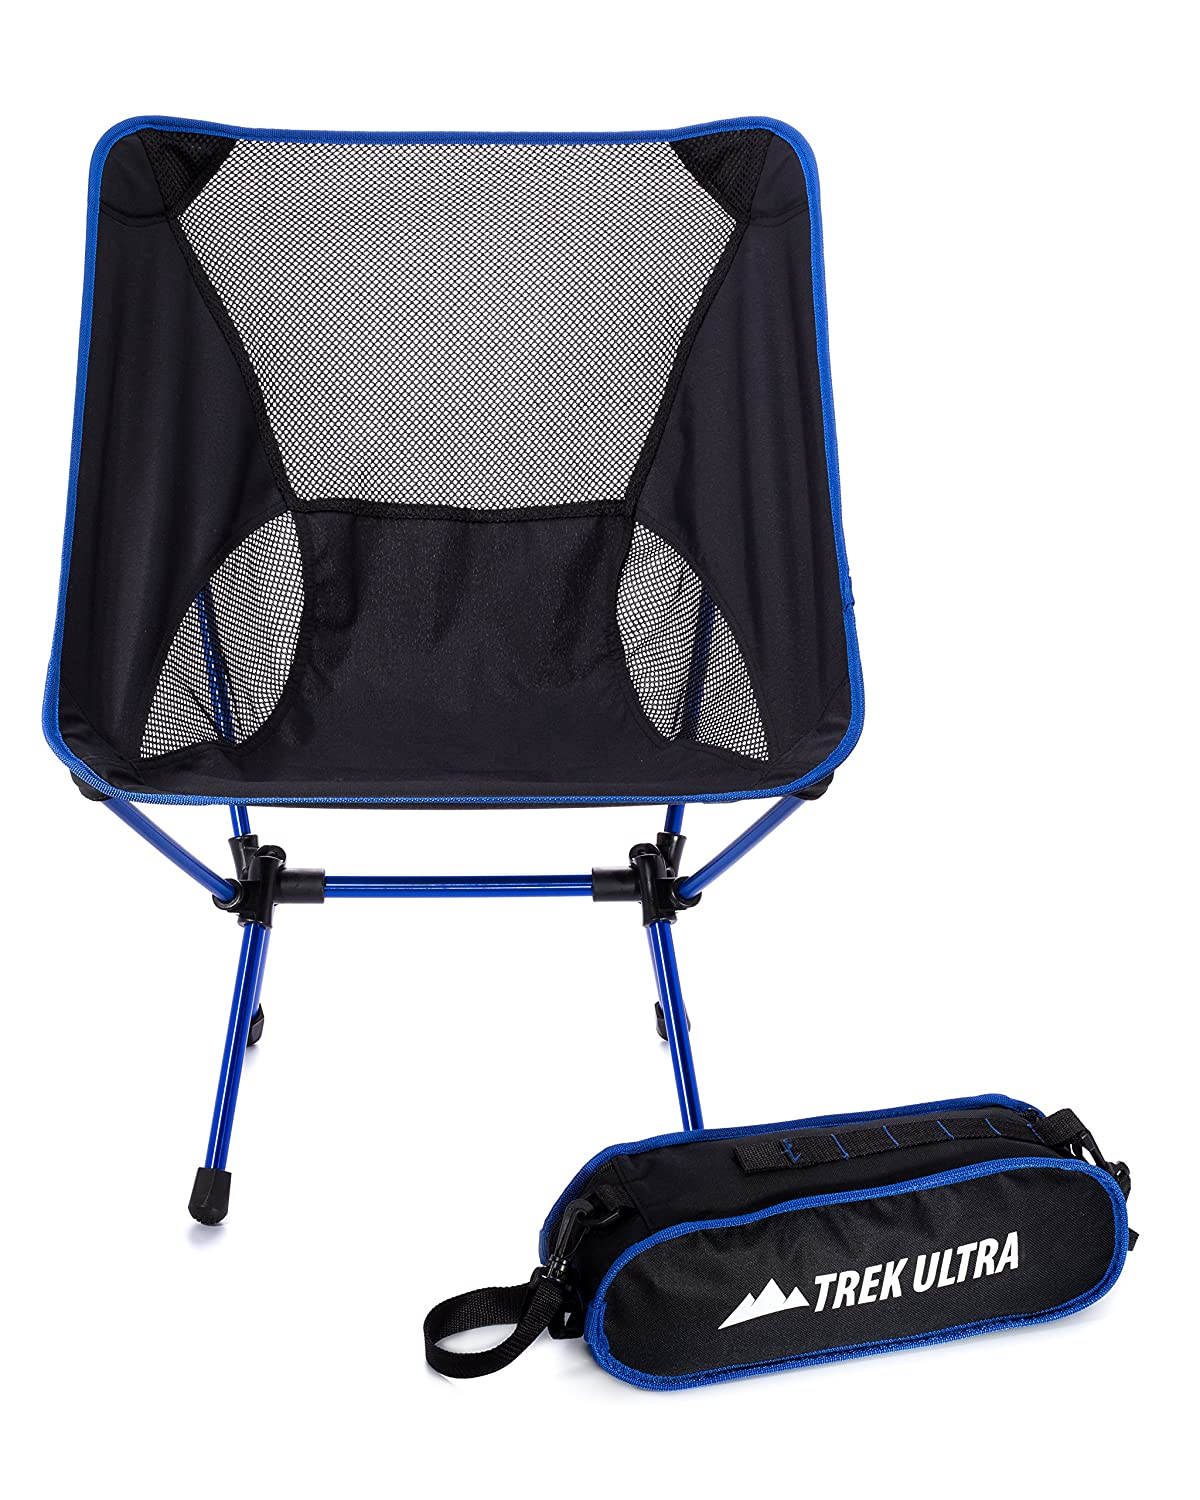 TrekUltra Camping Fold Up Chairs with Bag